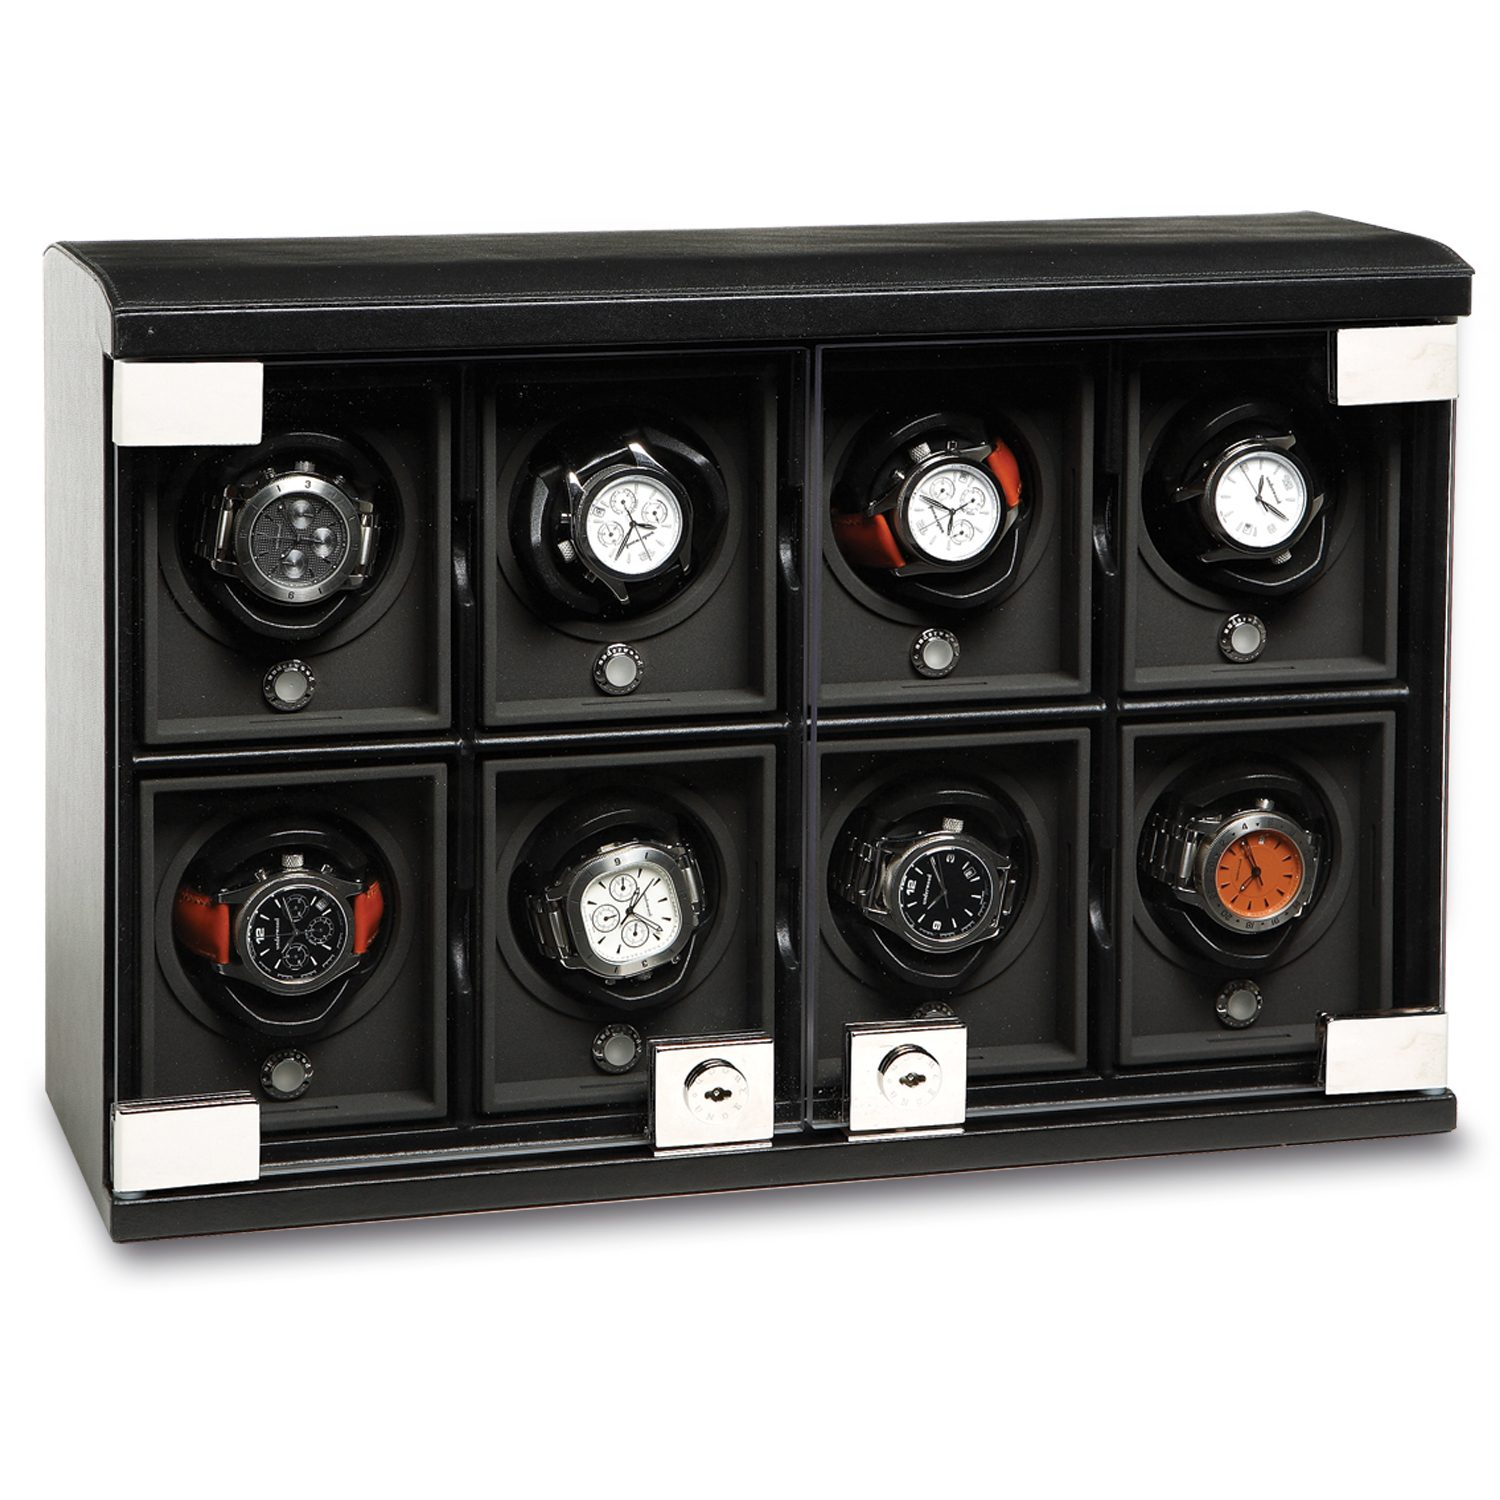 Watch-winder-for-8-watches